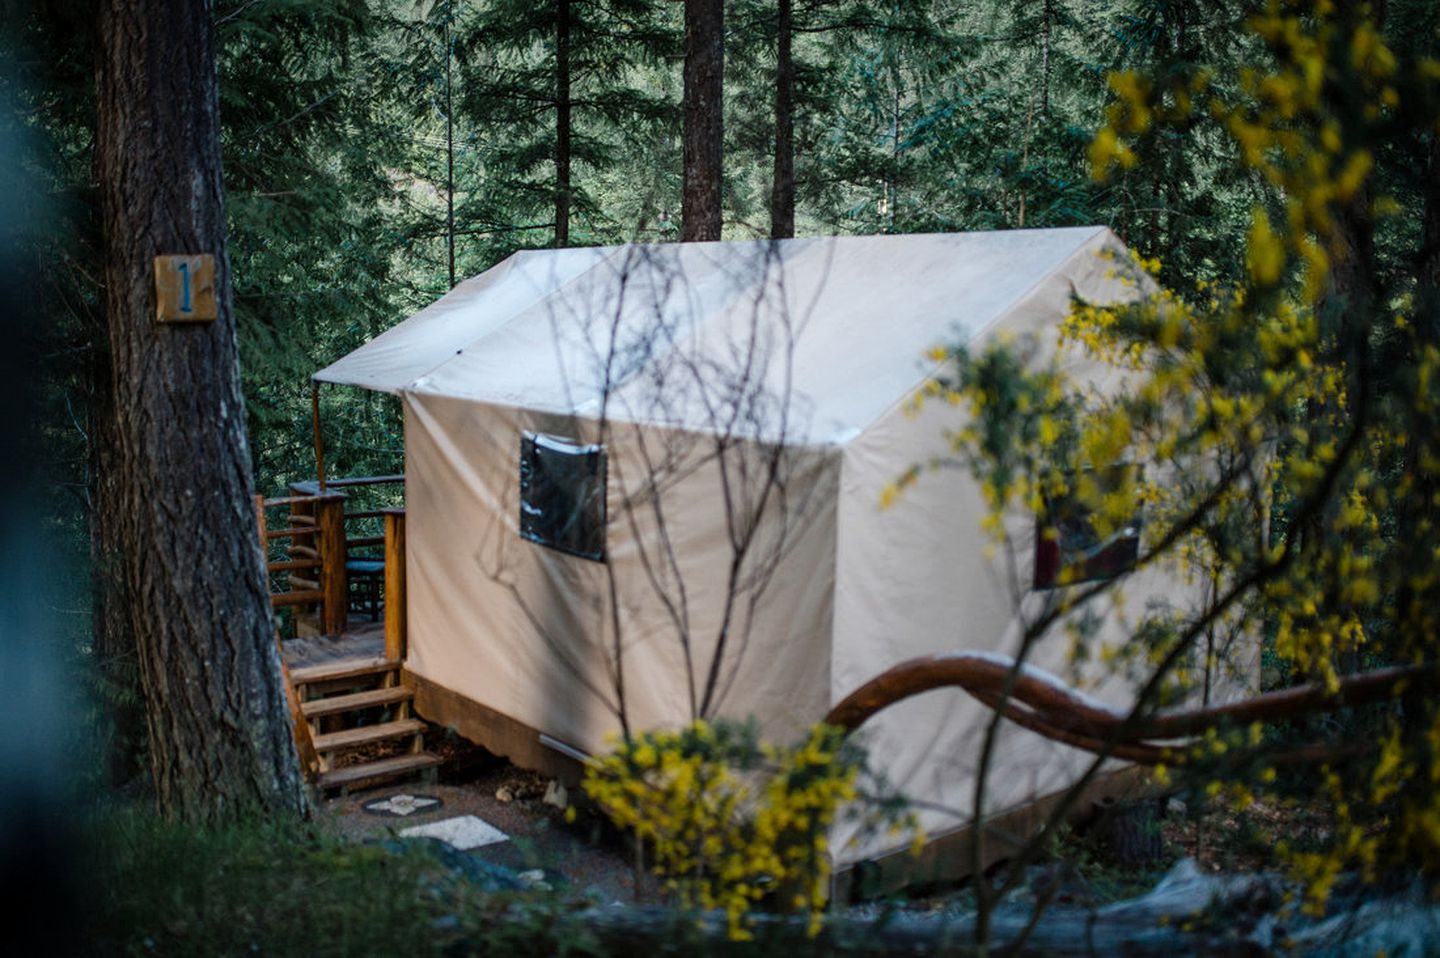 Romantic Safari Tent for Two on Sunshine Coast (Madeira Park, British Columbia, Canada)